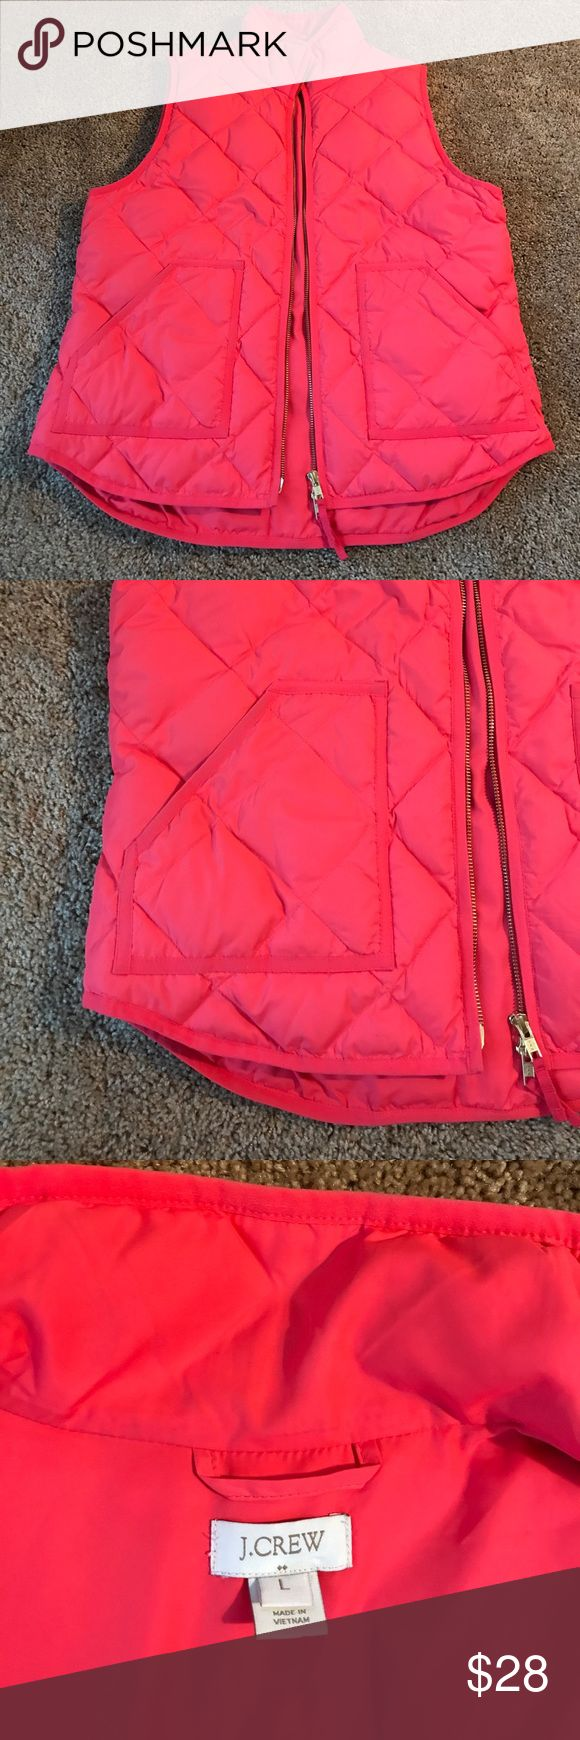 J Crew Pink Vest J. Crew winter vest in bright pink, size large. Super comfy, not too puffy so doesn't add lots of volume to your look! J. Crew Jackets & Coats Vests